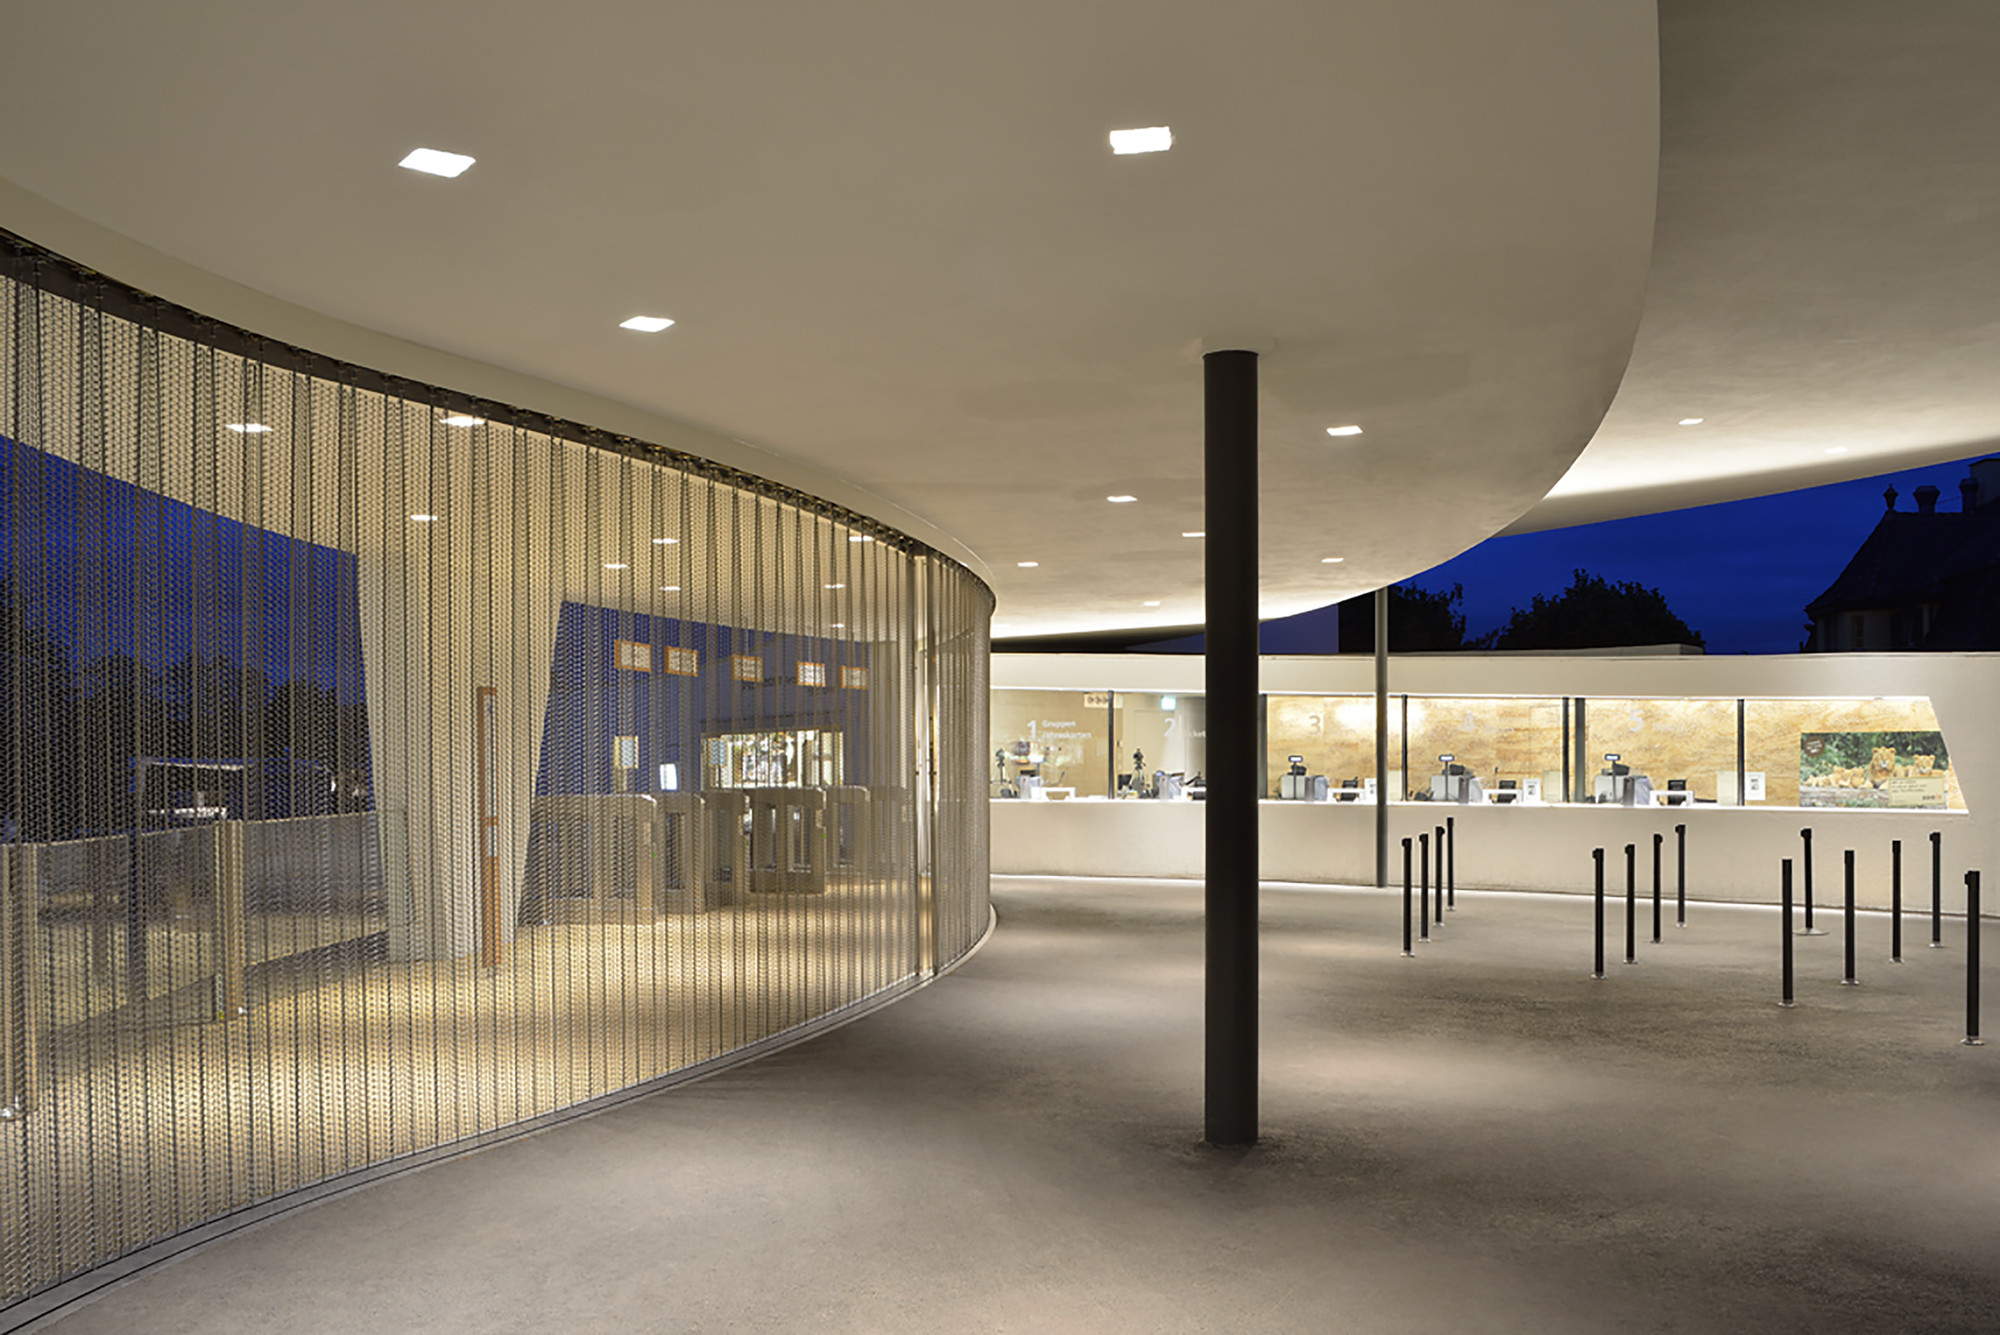 Foyer Interior Zoo : Gallery of zurich zoo foyer renovation extension l p